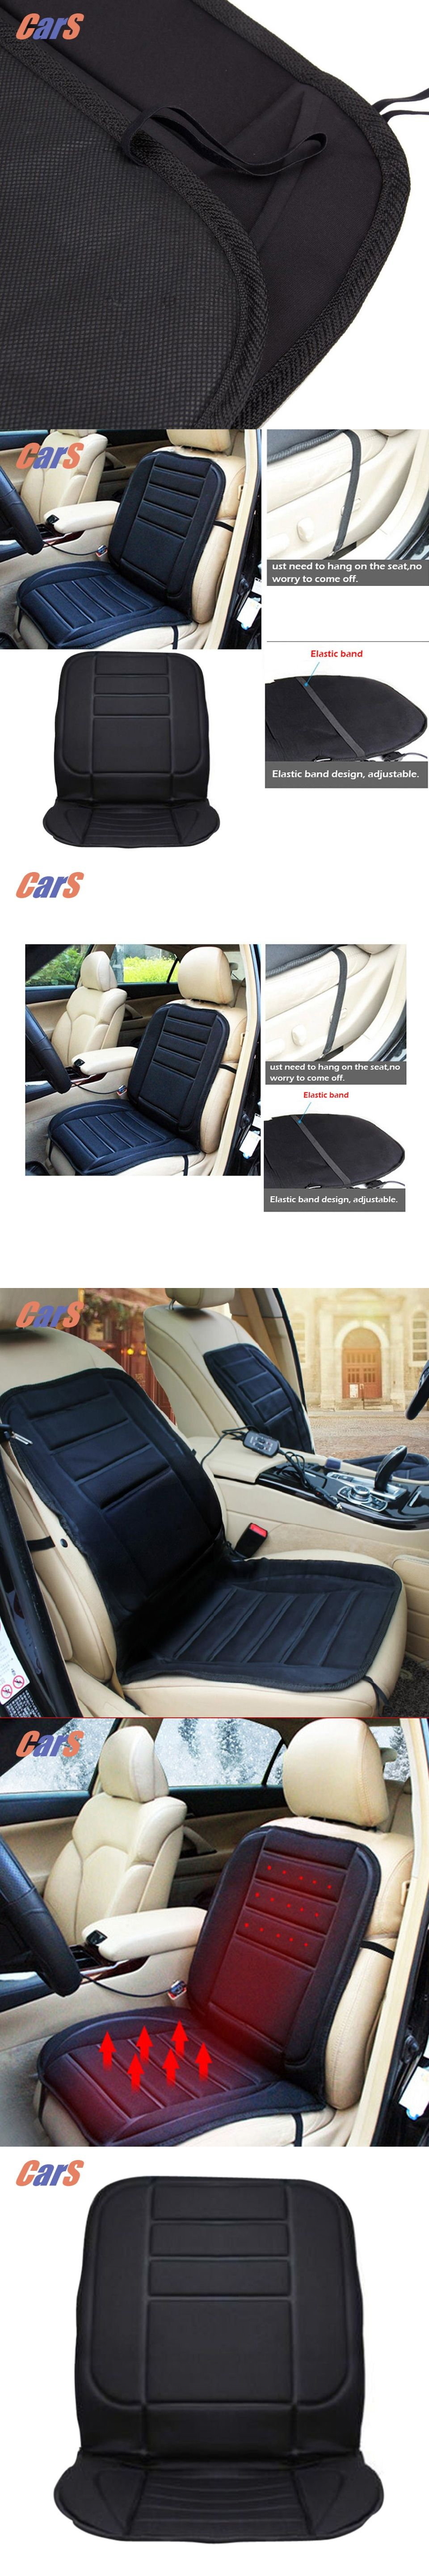 12V Car Seat Warmer Cover For Cold Days Heated Cushion Auto Heating